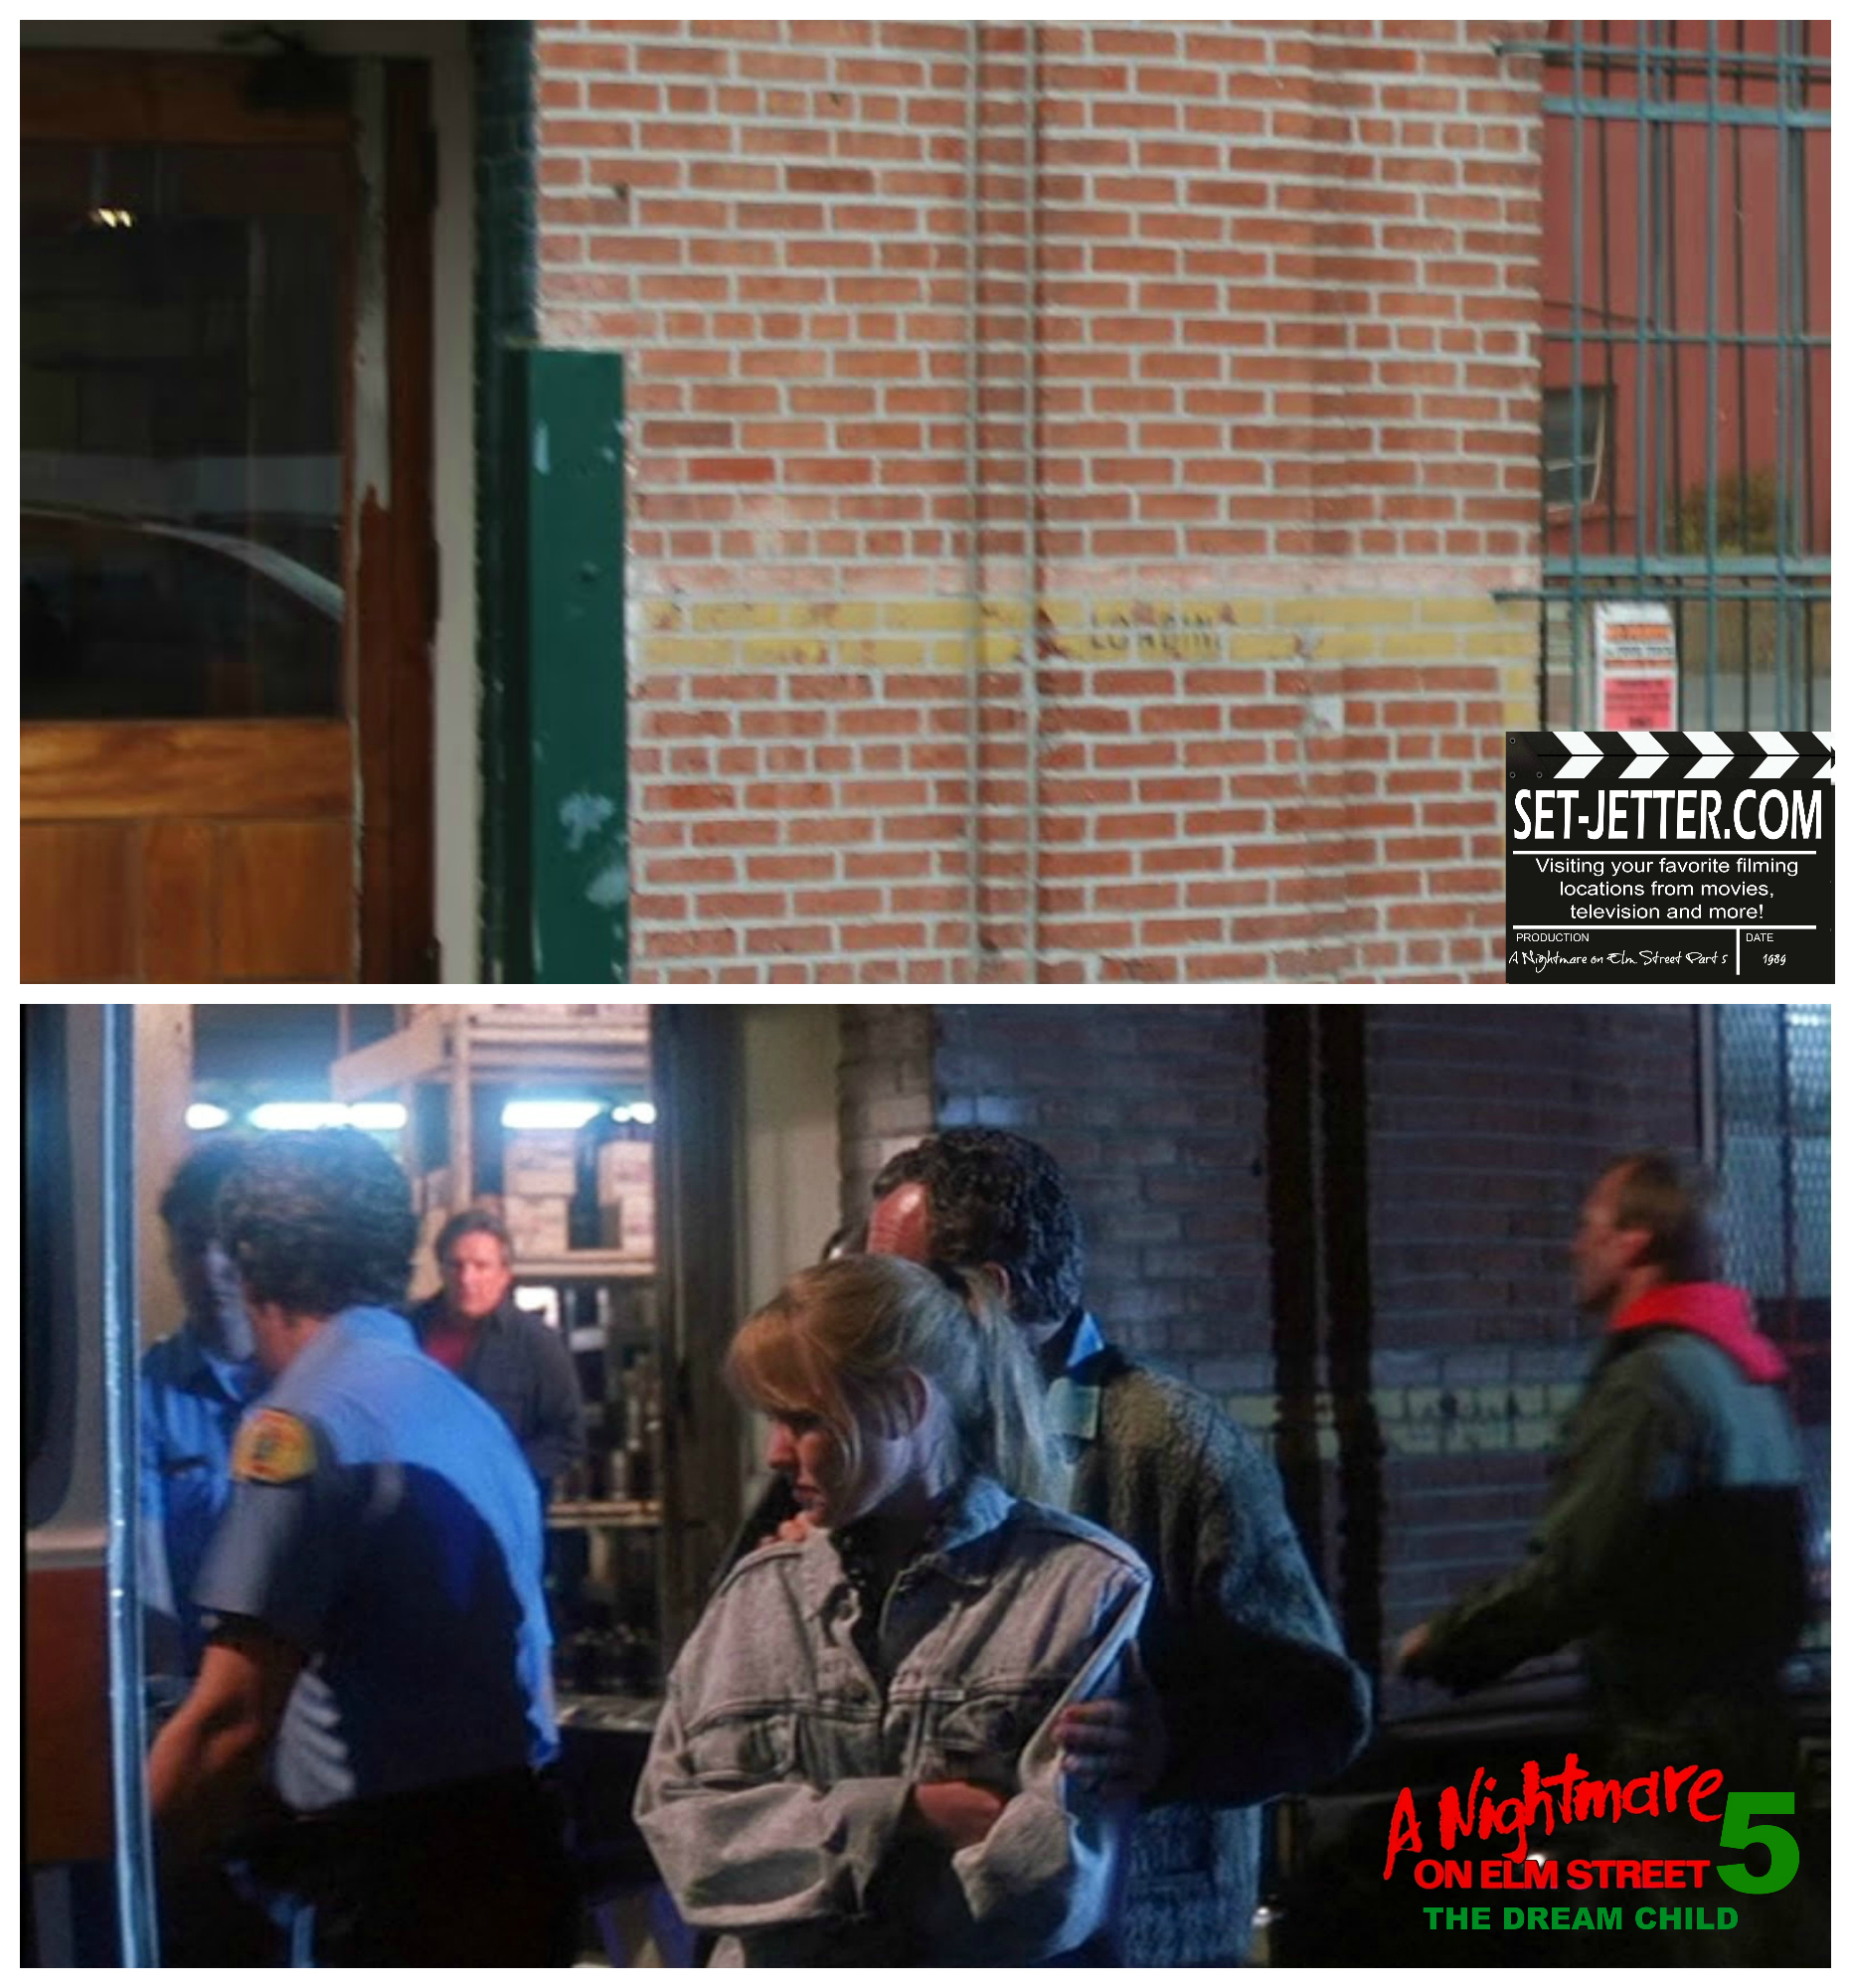 Nightmare on Elm Street Part 5 comparison 07.jpg